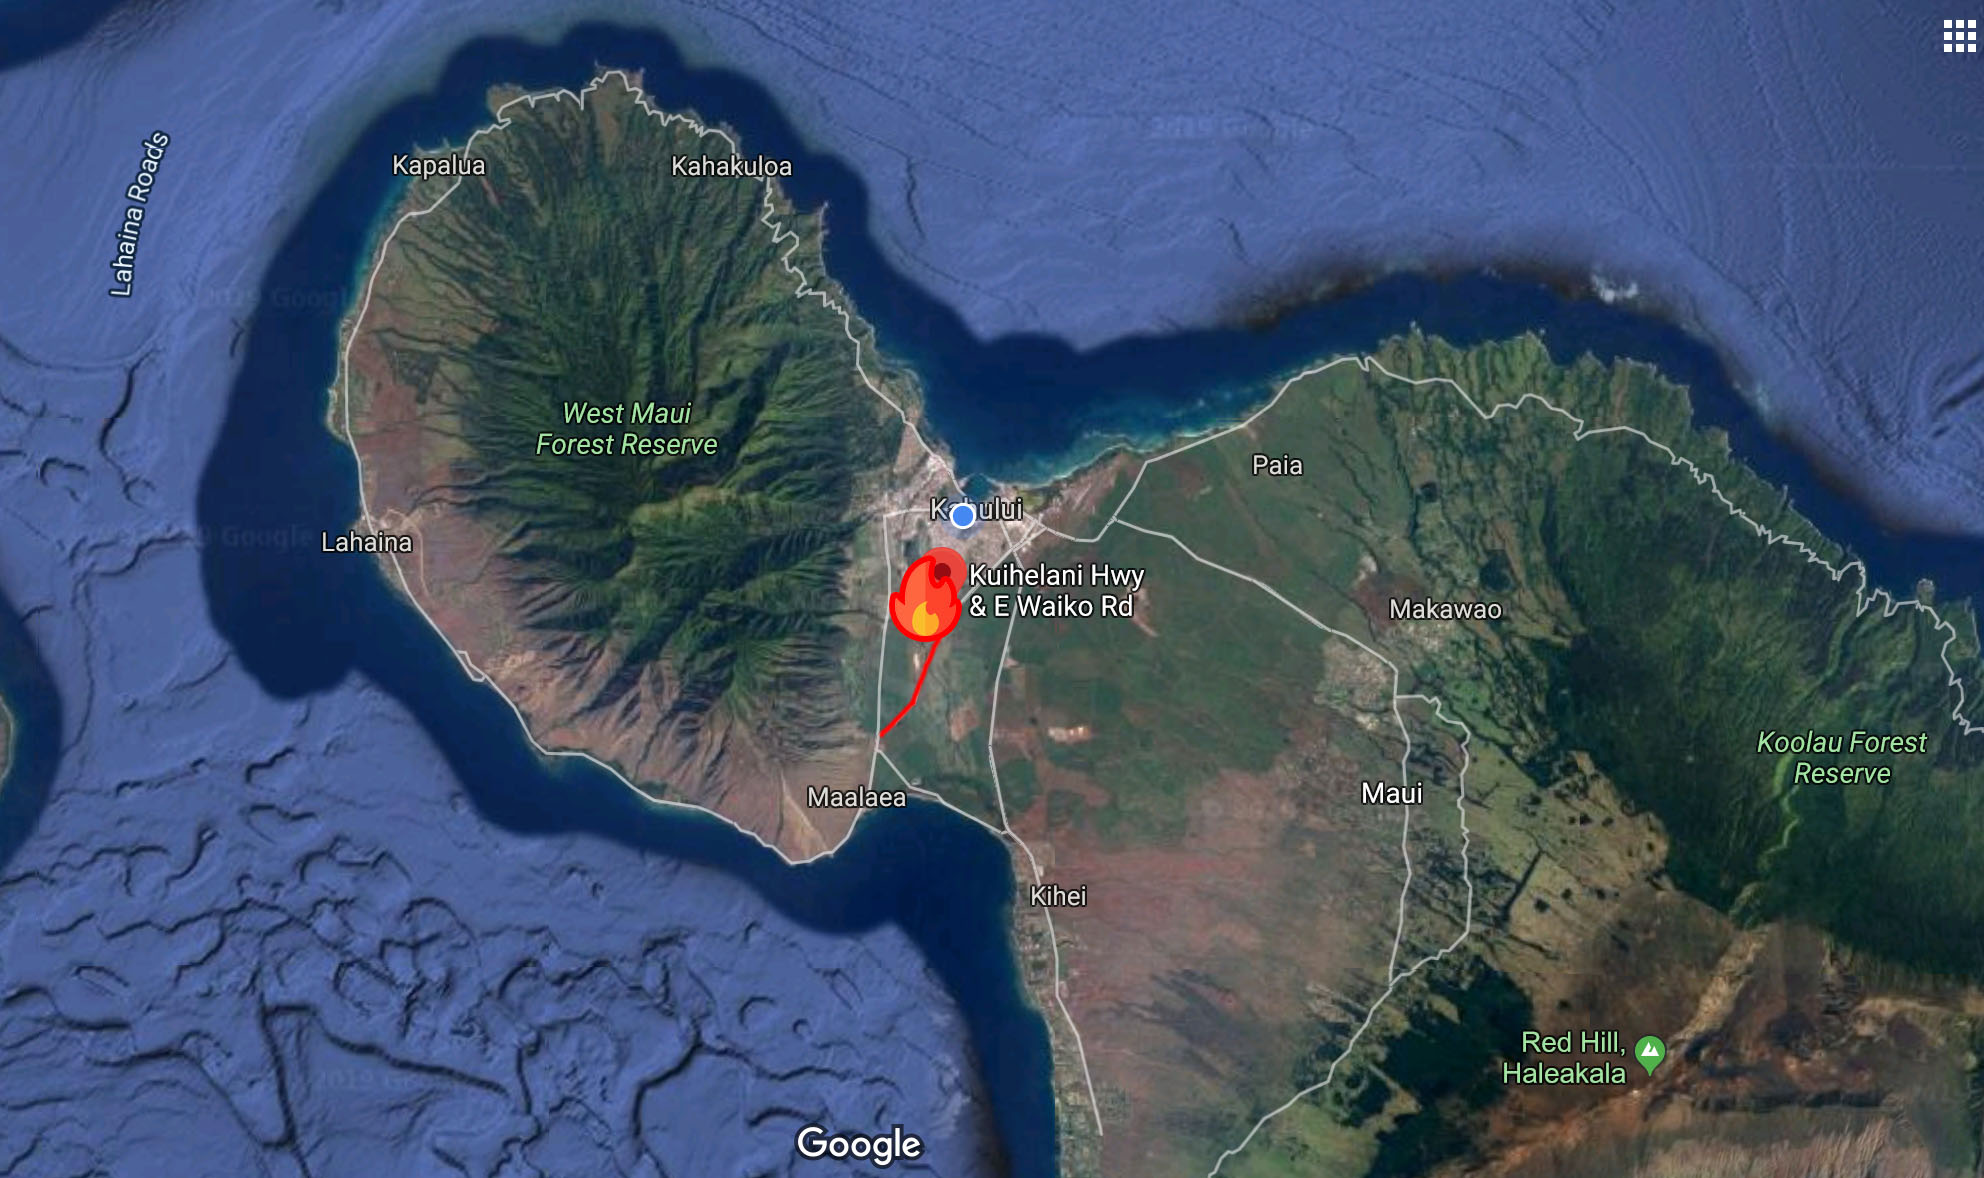 Tourists, Residents Evacuated As Wildfire Spreads At Hawaii's Maui Island